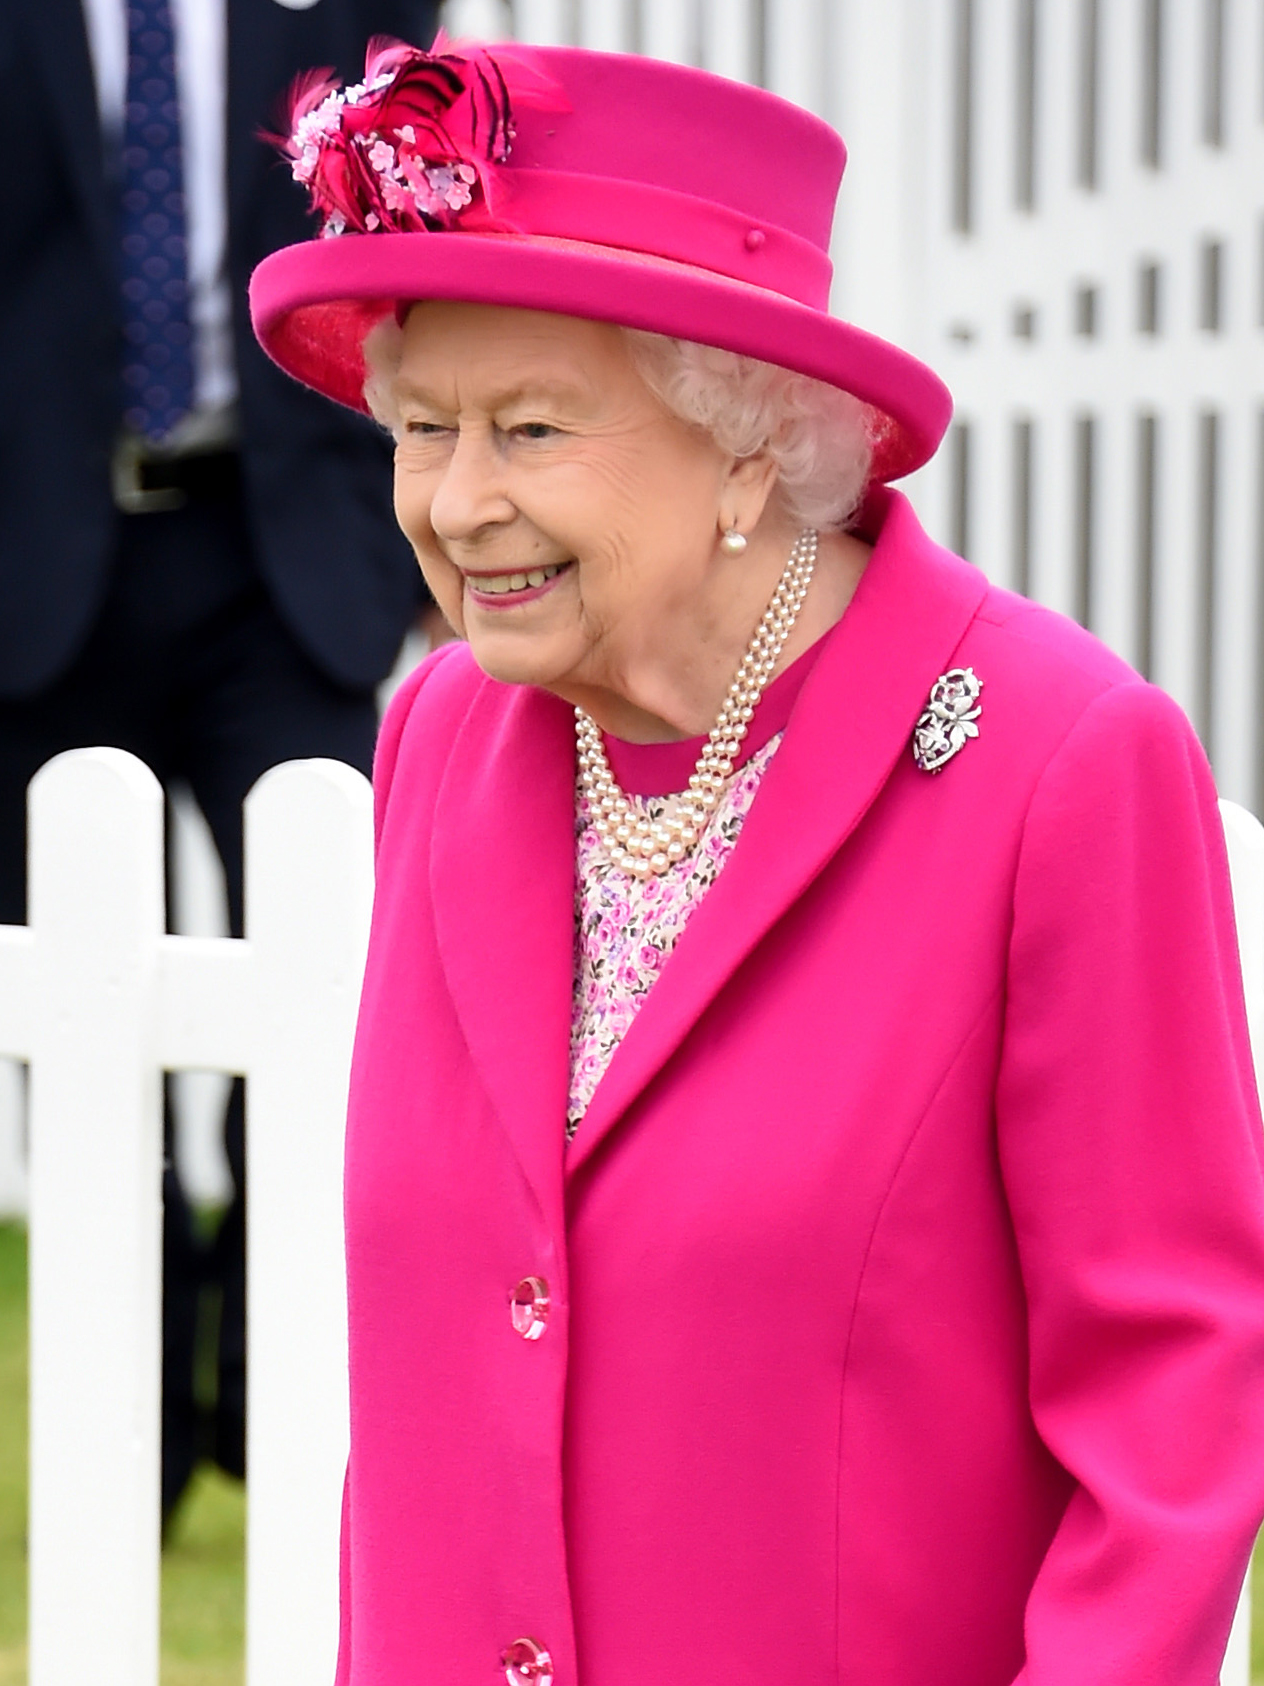 The Queen is completely unfazed after guest's scarf blows in her face at the polo